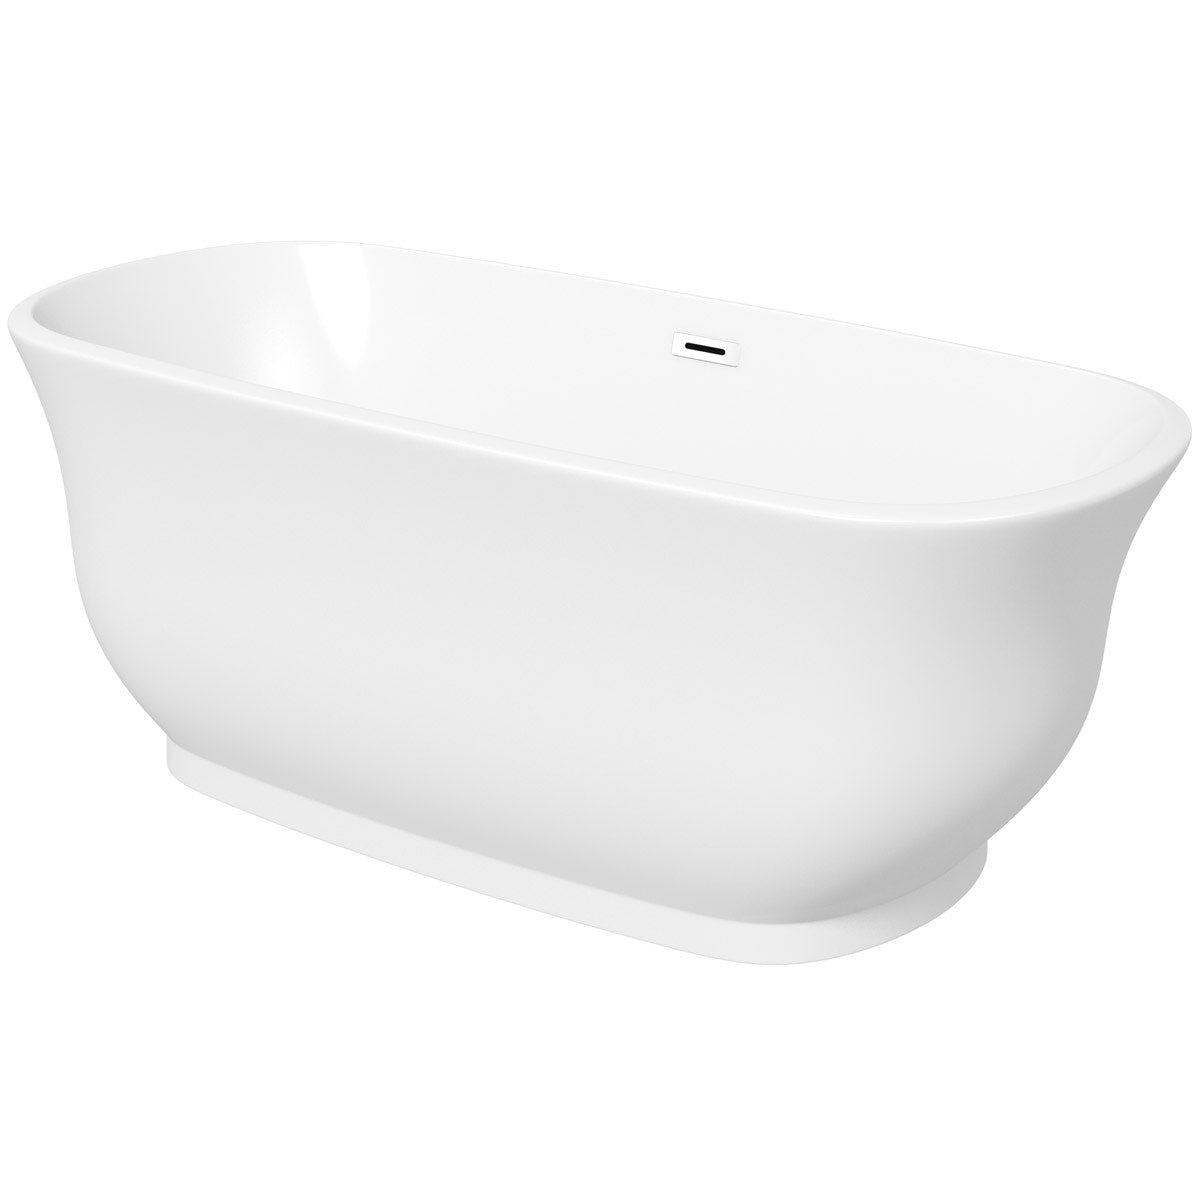 The Bath Co. Camberley traditional freestanding bath offer pack